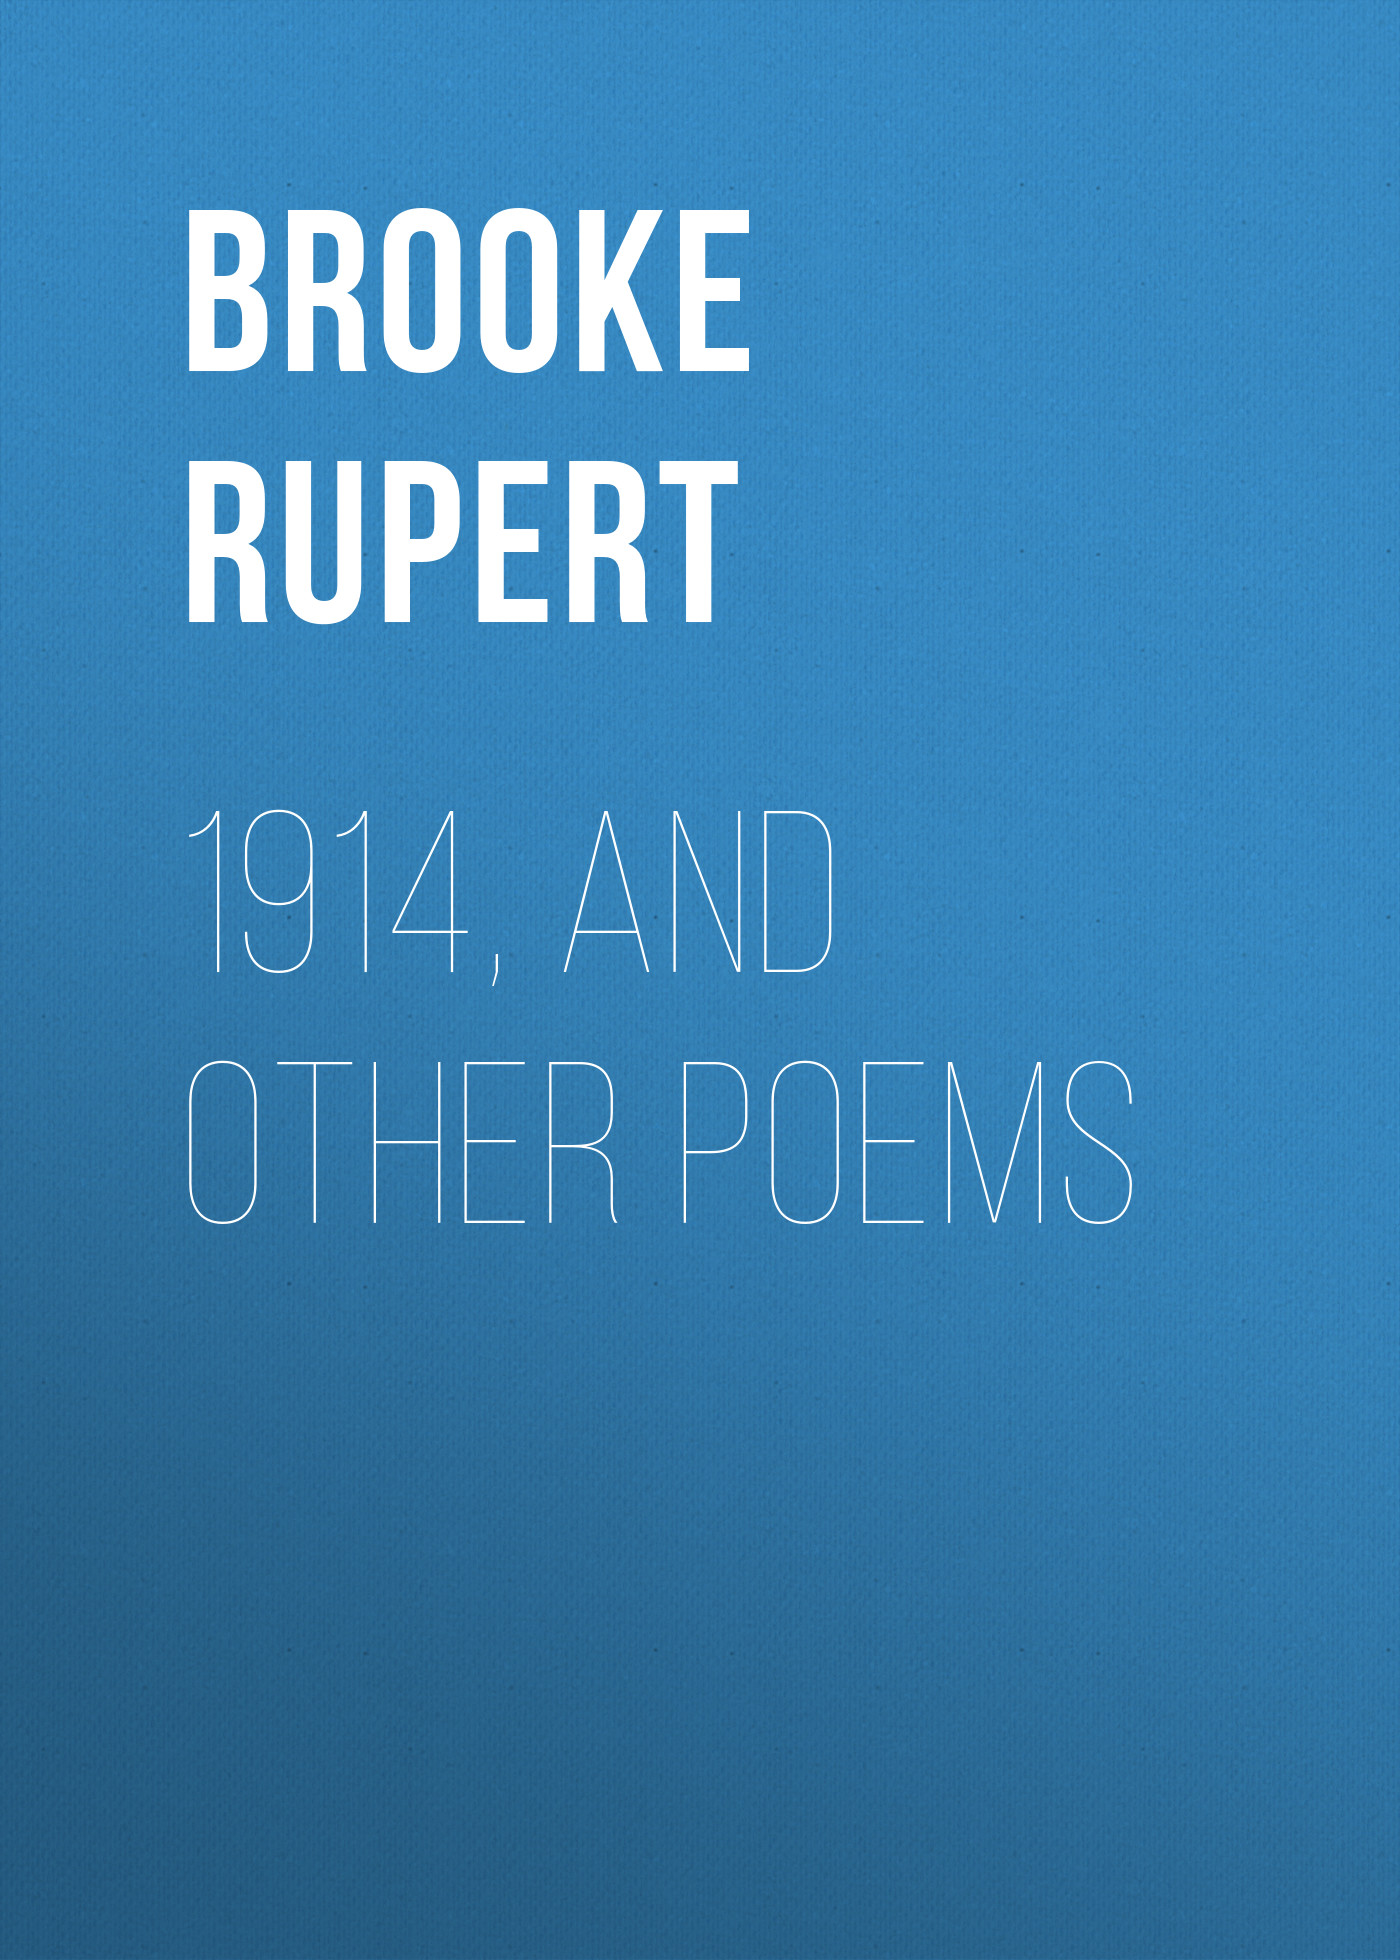 Brooke Rupert 1914, and Other Poems